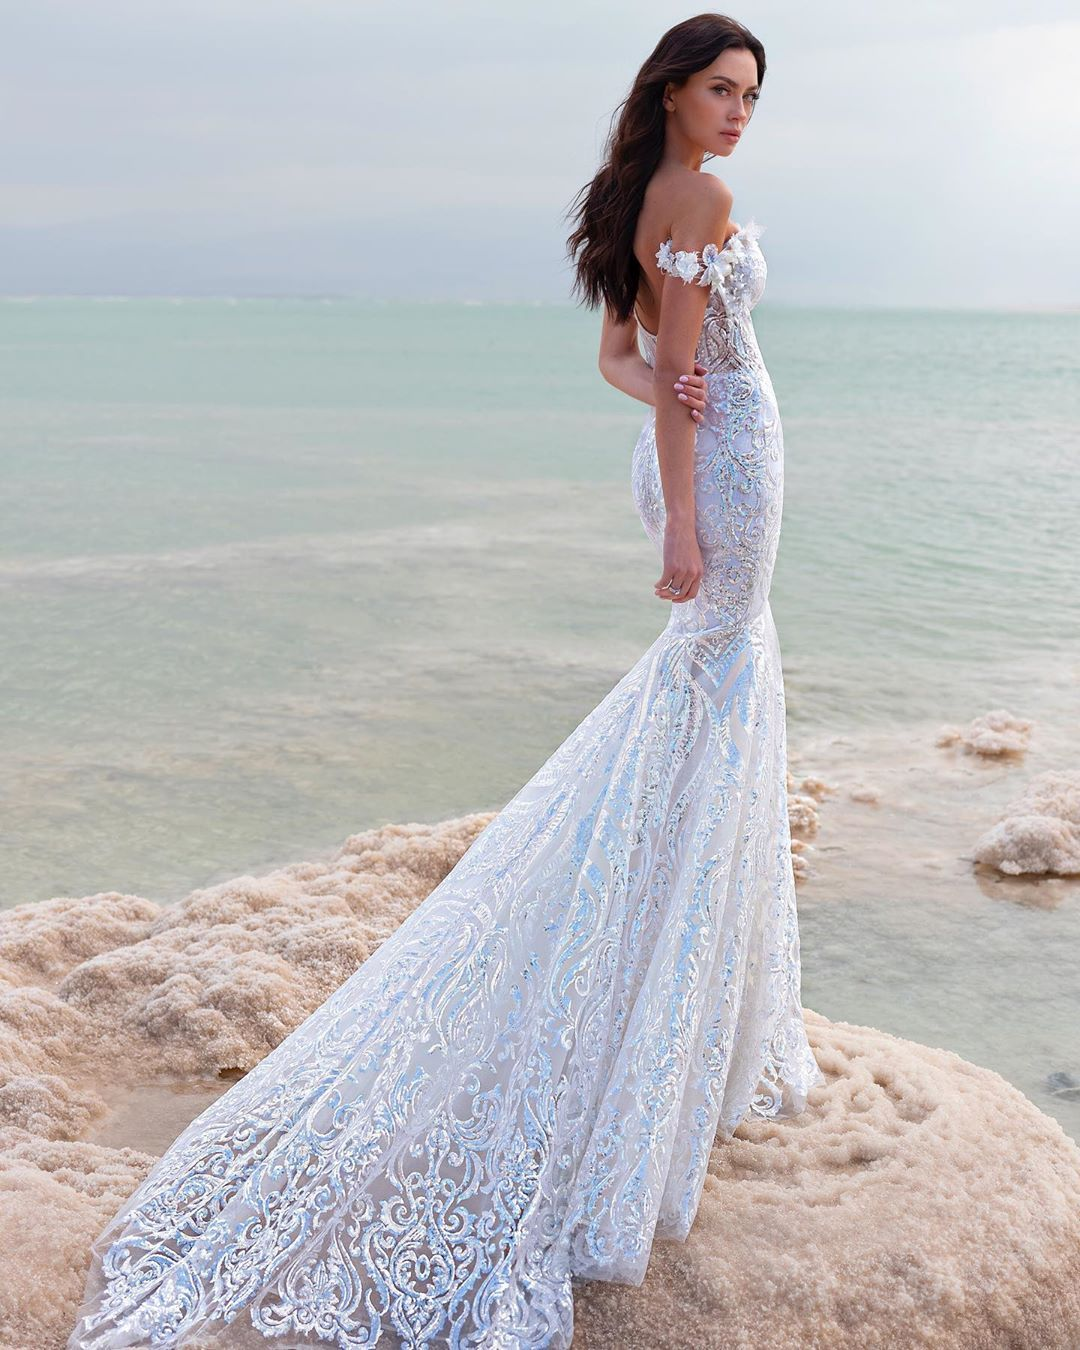 Bridal Mermaid Gown 2020 Lovebypninatornai Style 14753 Collection Available Kleinfel Wedding Dresses Lace Ball Gowns Wedding Wedding Dresses Strapless